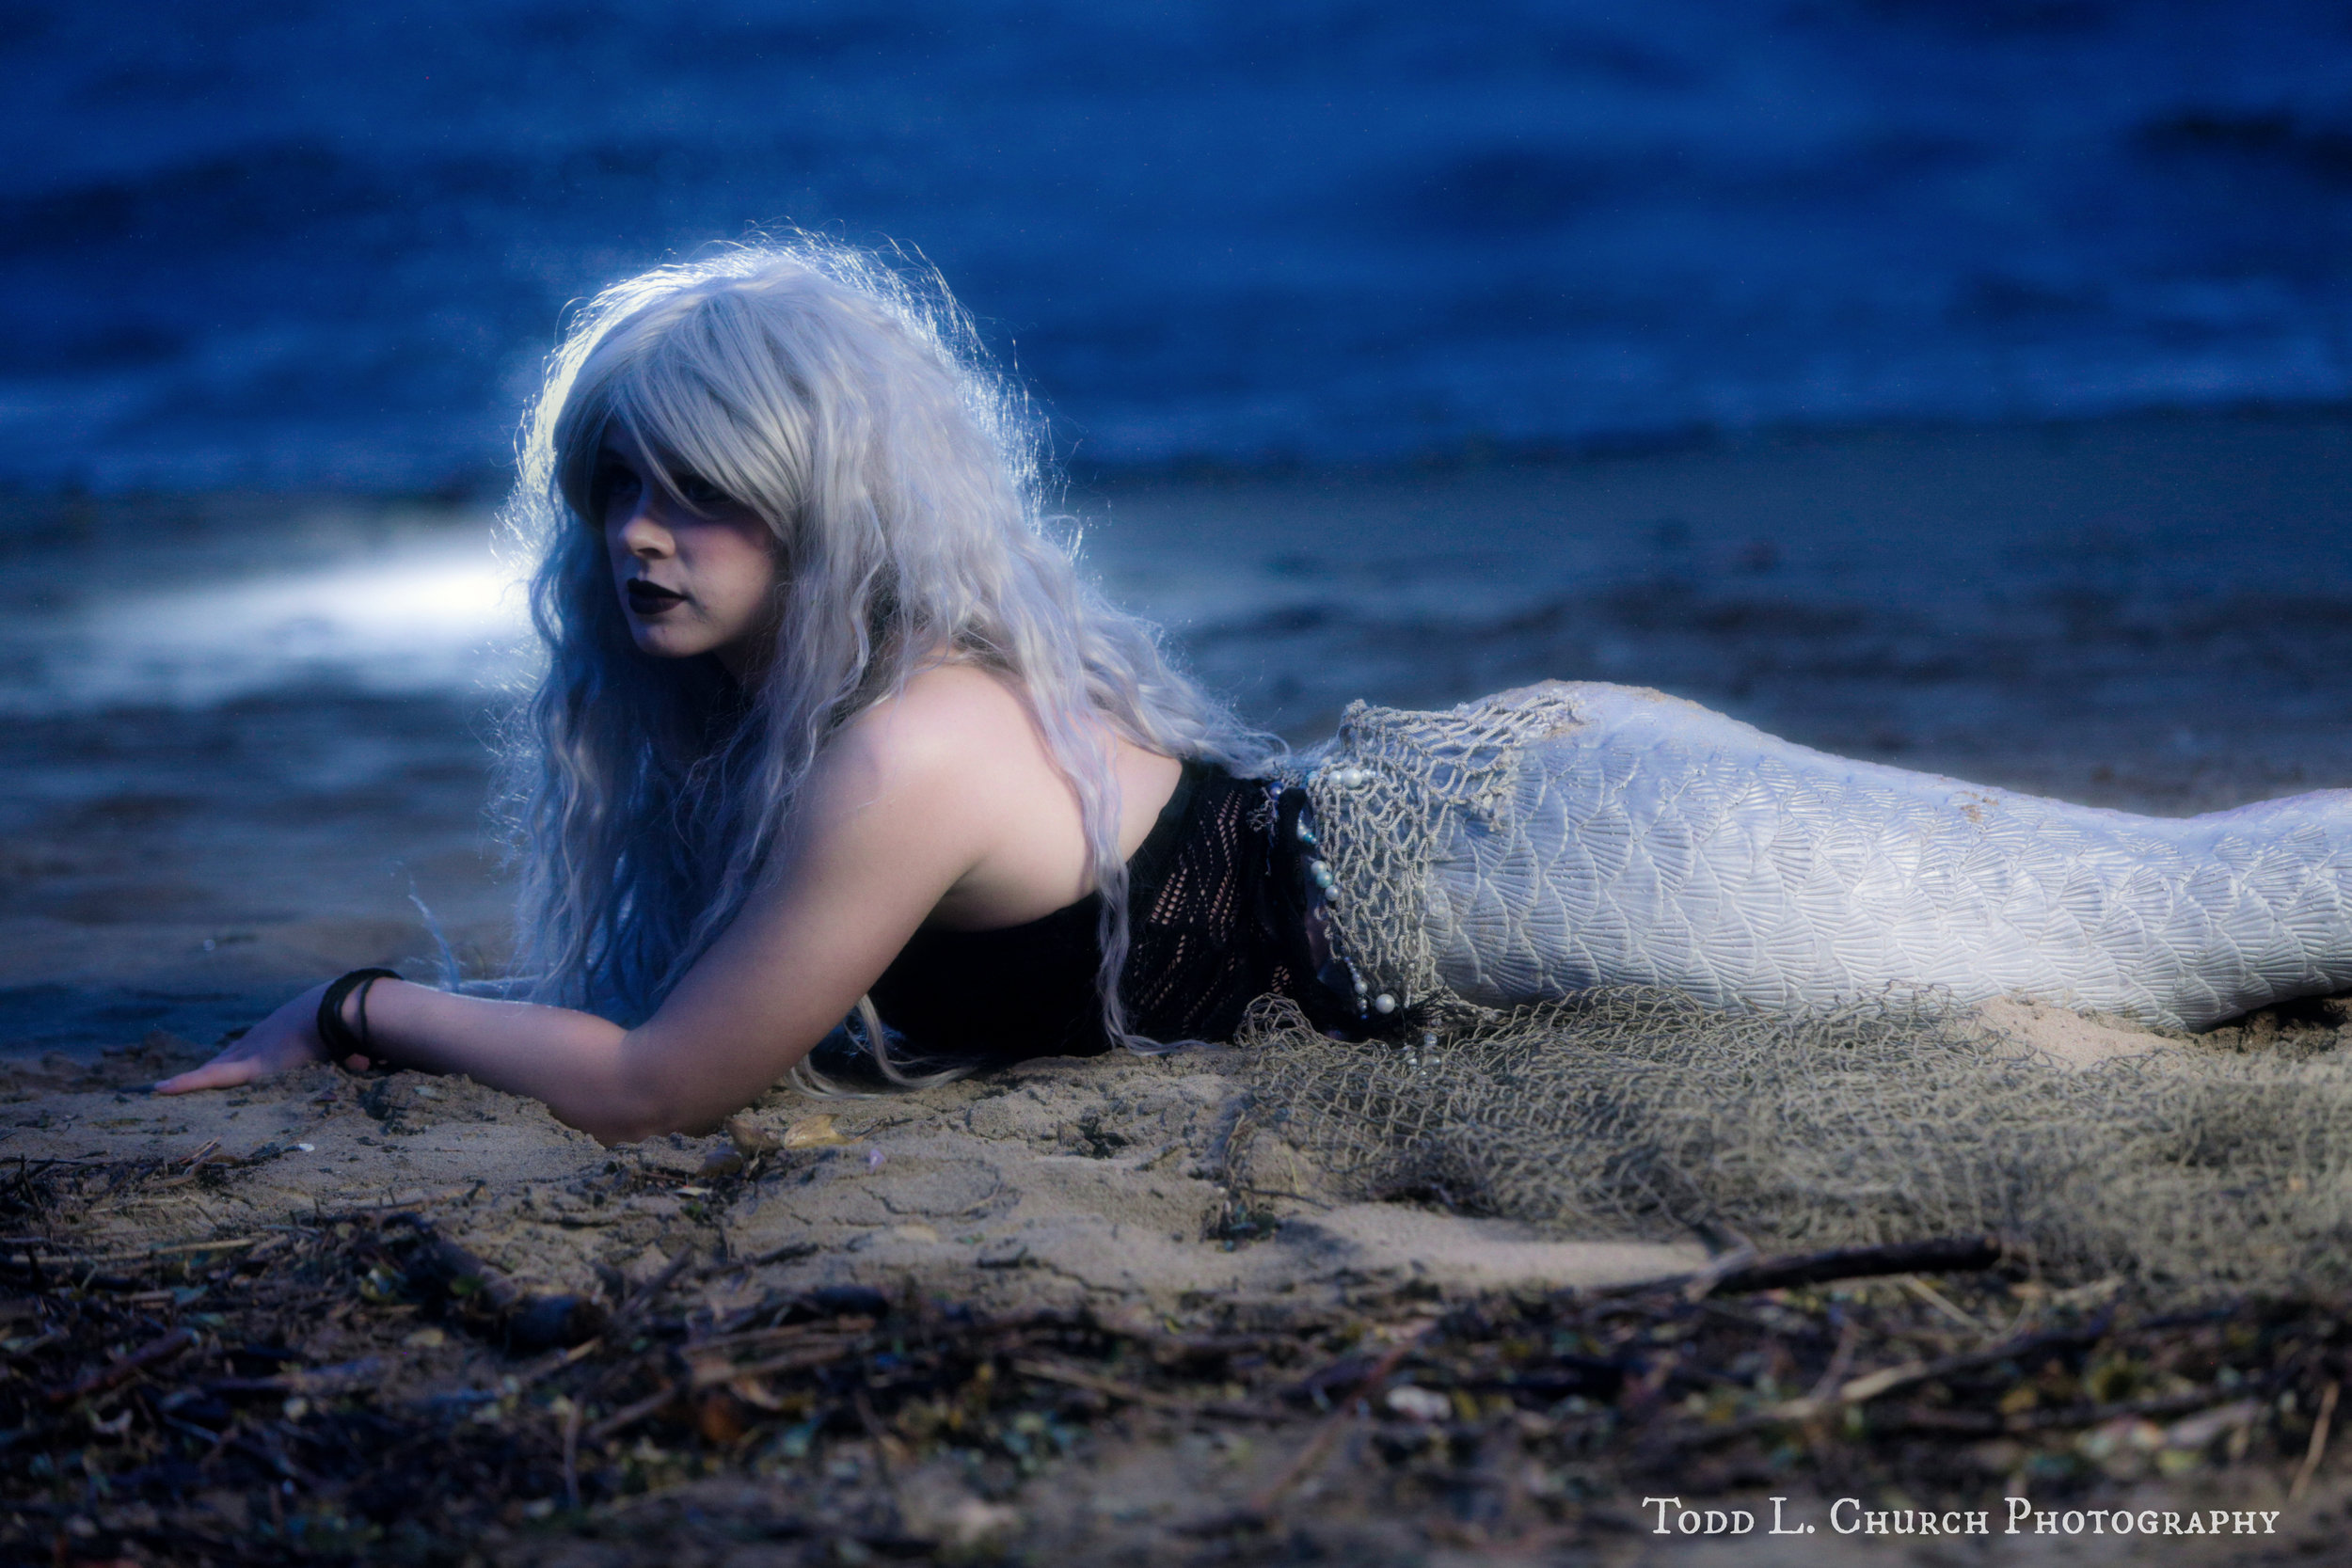 The Lady of the Lake: Professional Mermaids are scattered all across the world. Although most live in oceans and seas, this mermaid calls the Great Lakes of Northern Michigan her home. This picture was taken in Traverse City, Michigan.  Photo by: Todd L. Church Photography, Model: Mermaid Phantom of www.themagiccrafter.com